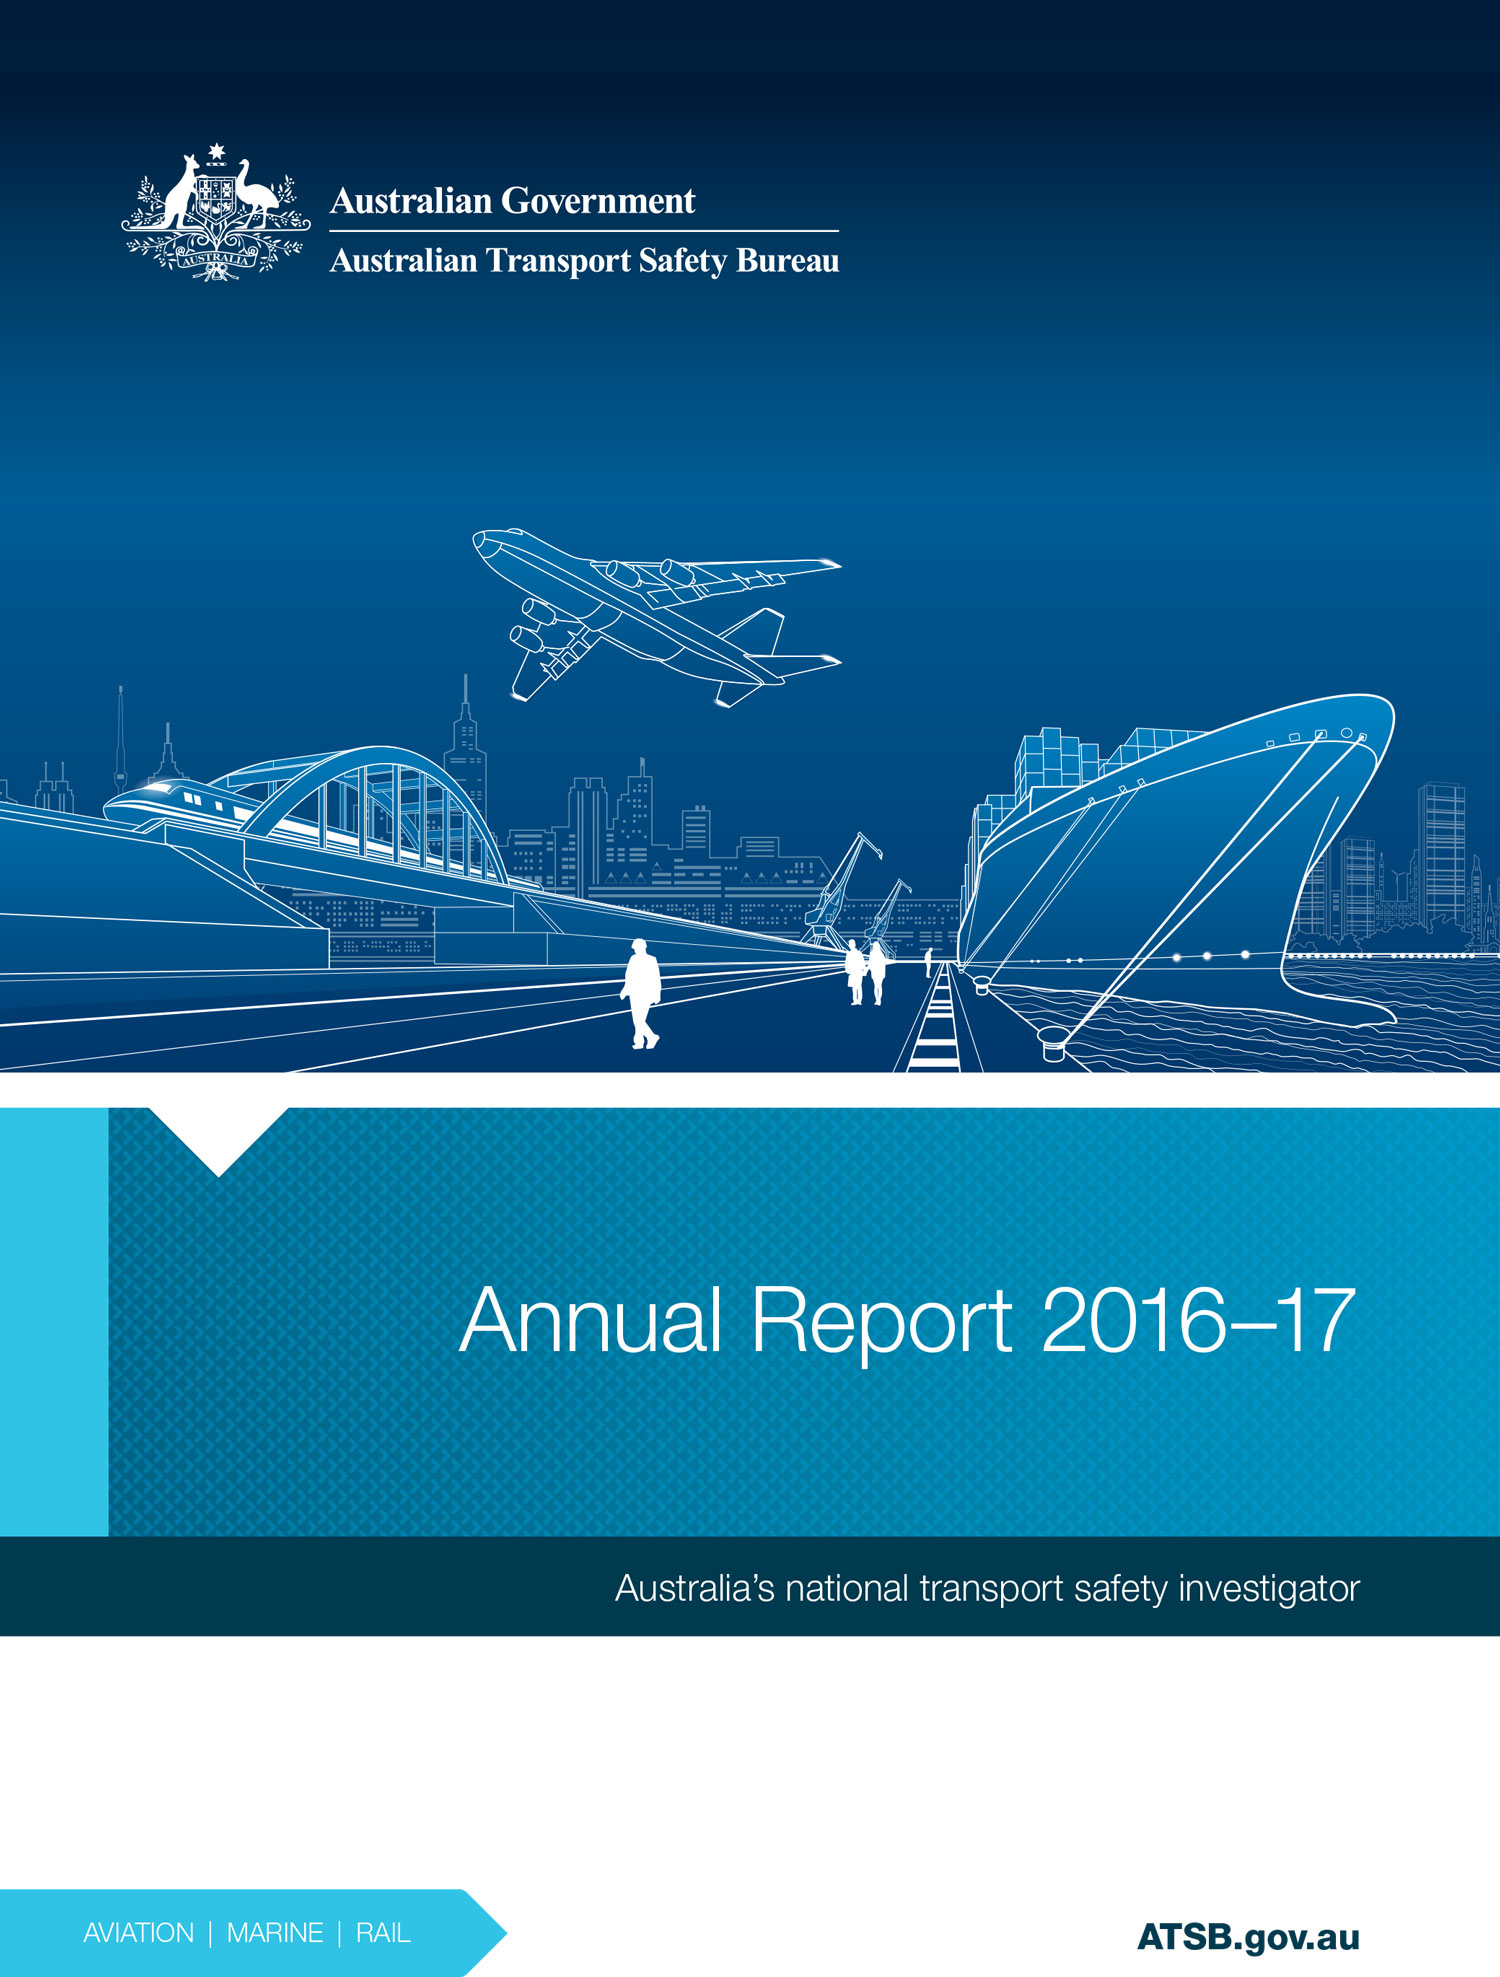 ATSB Adds Fatigue, Drones to List of Safety Priorities ...